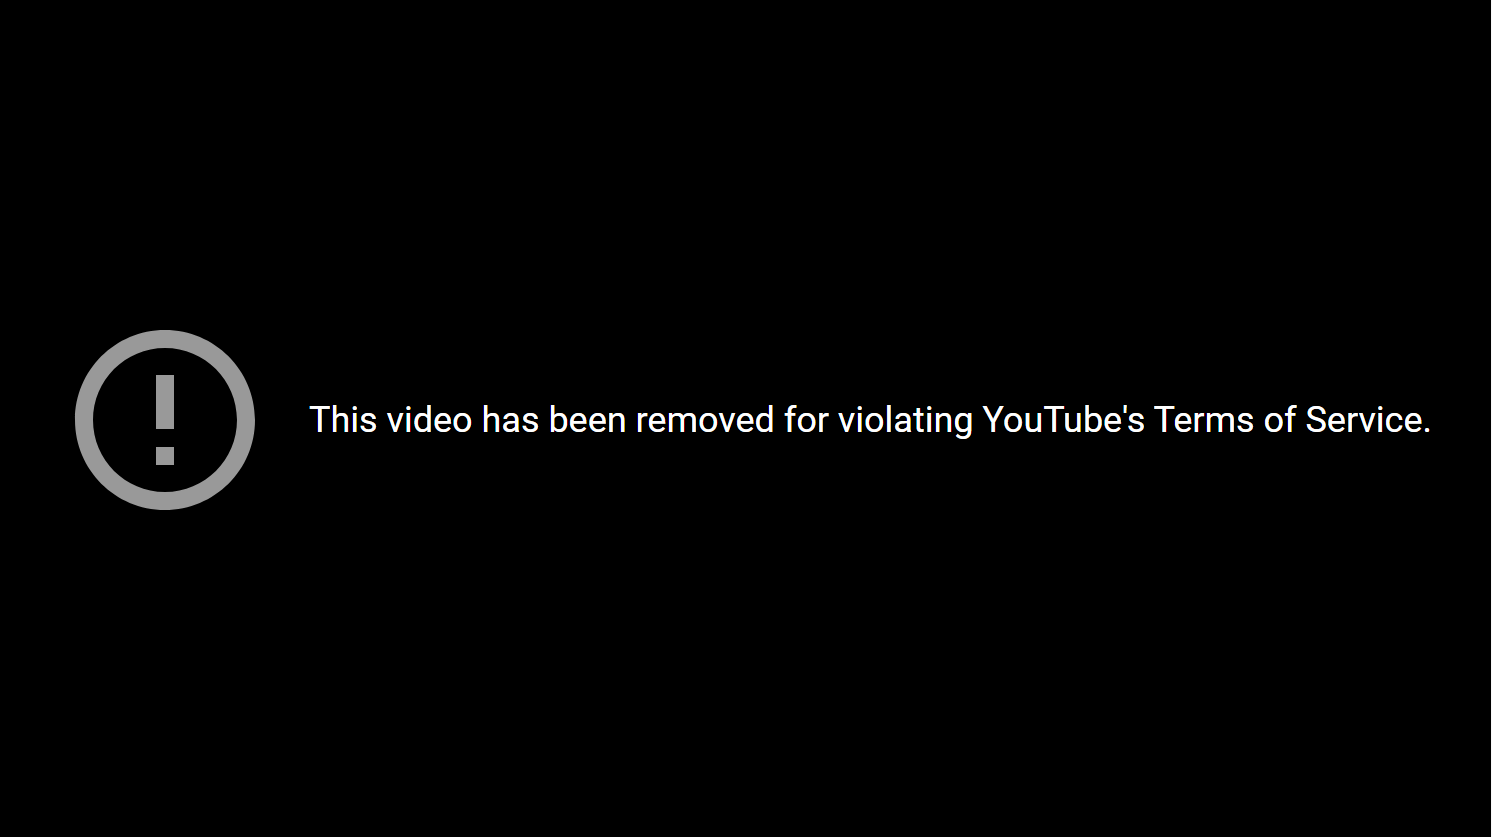 Removed for violating TOS